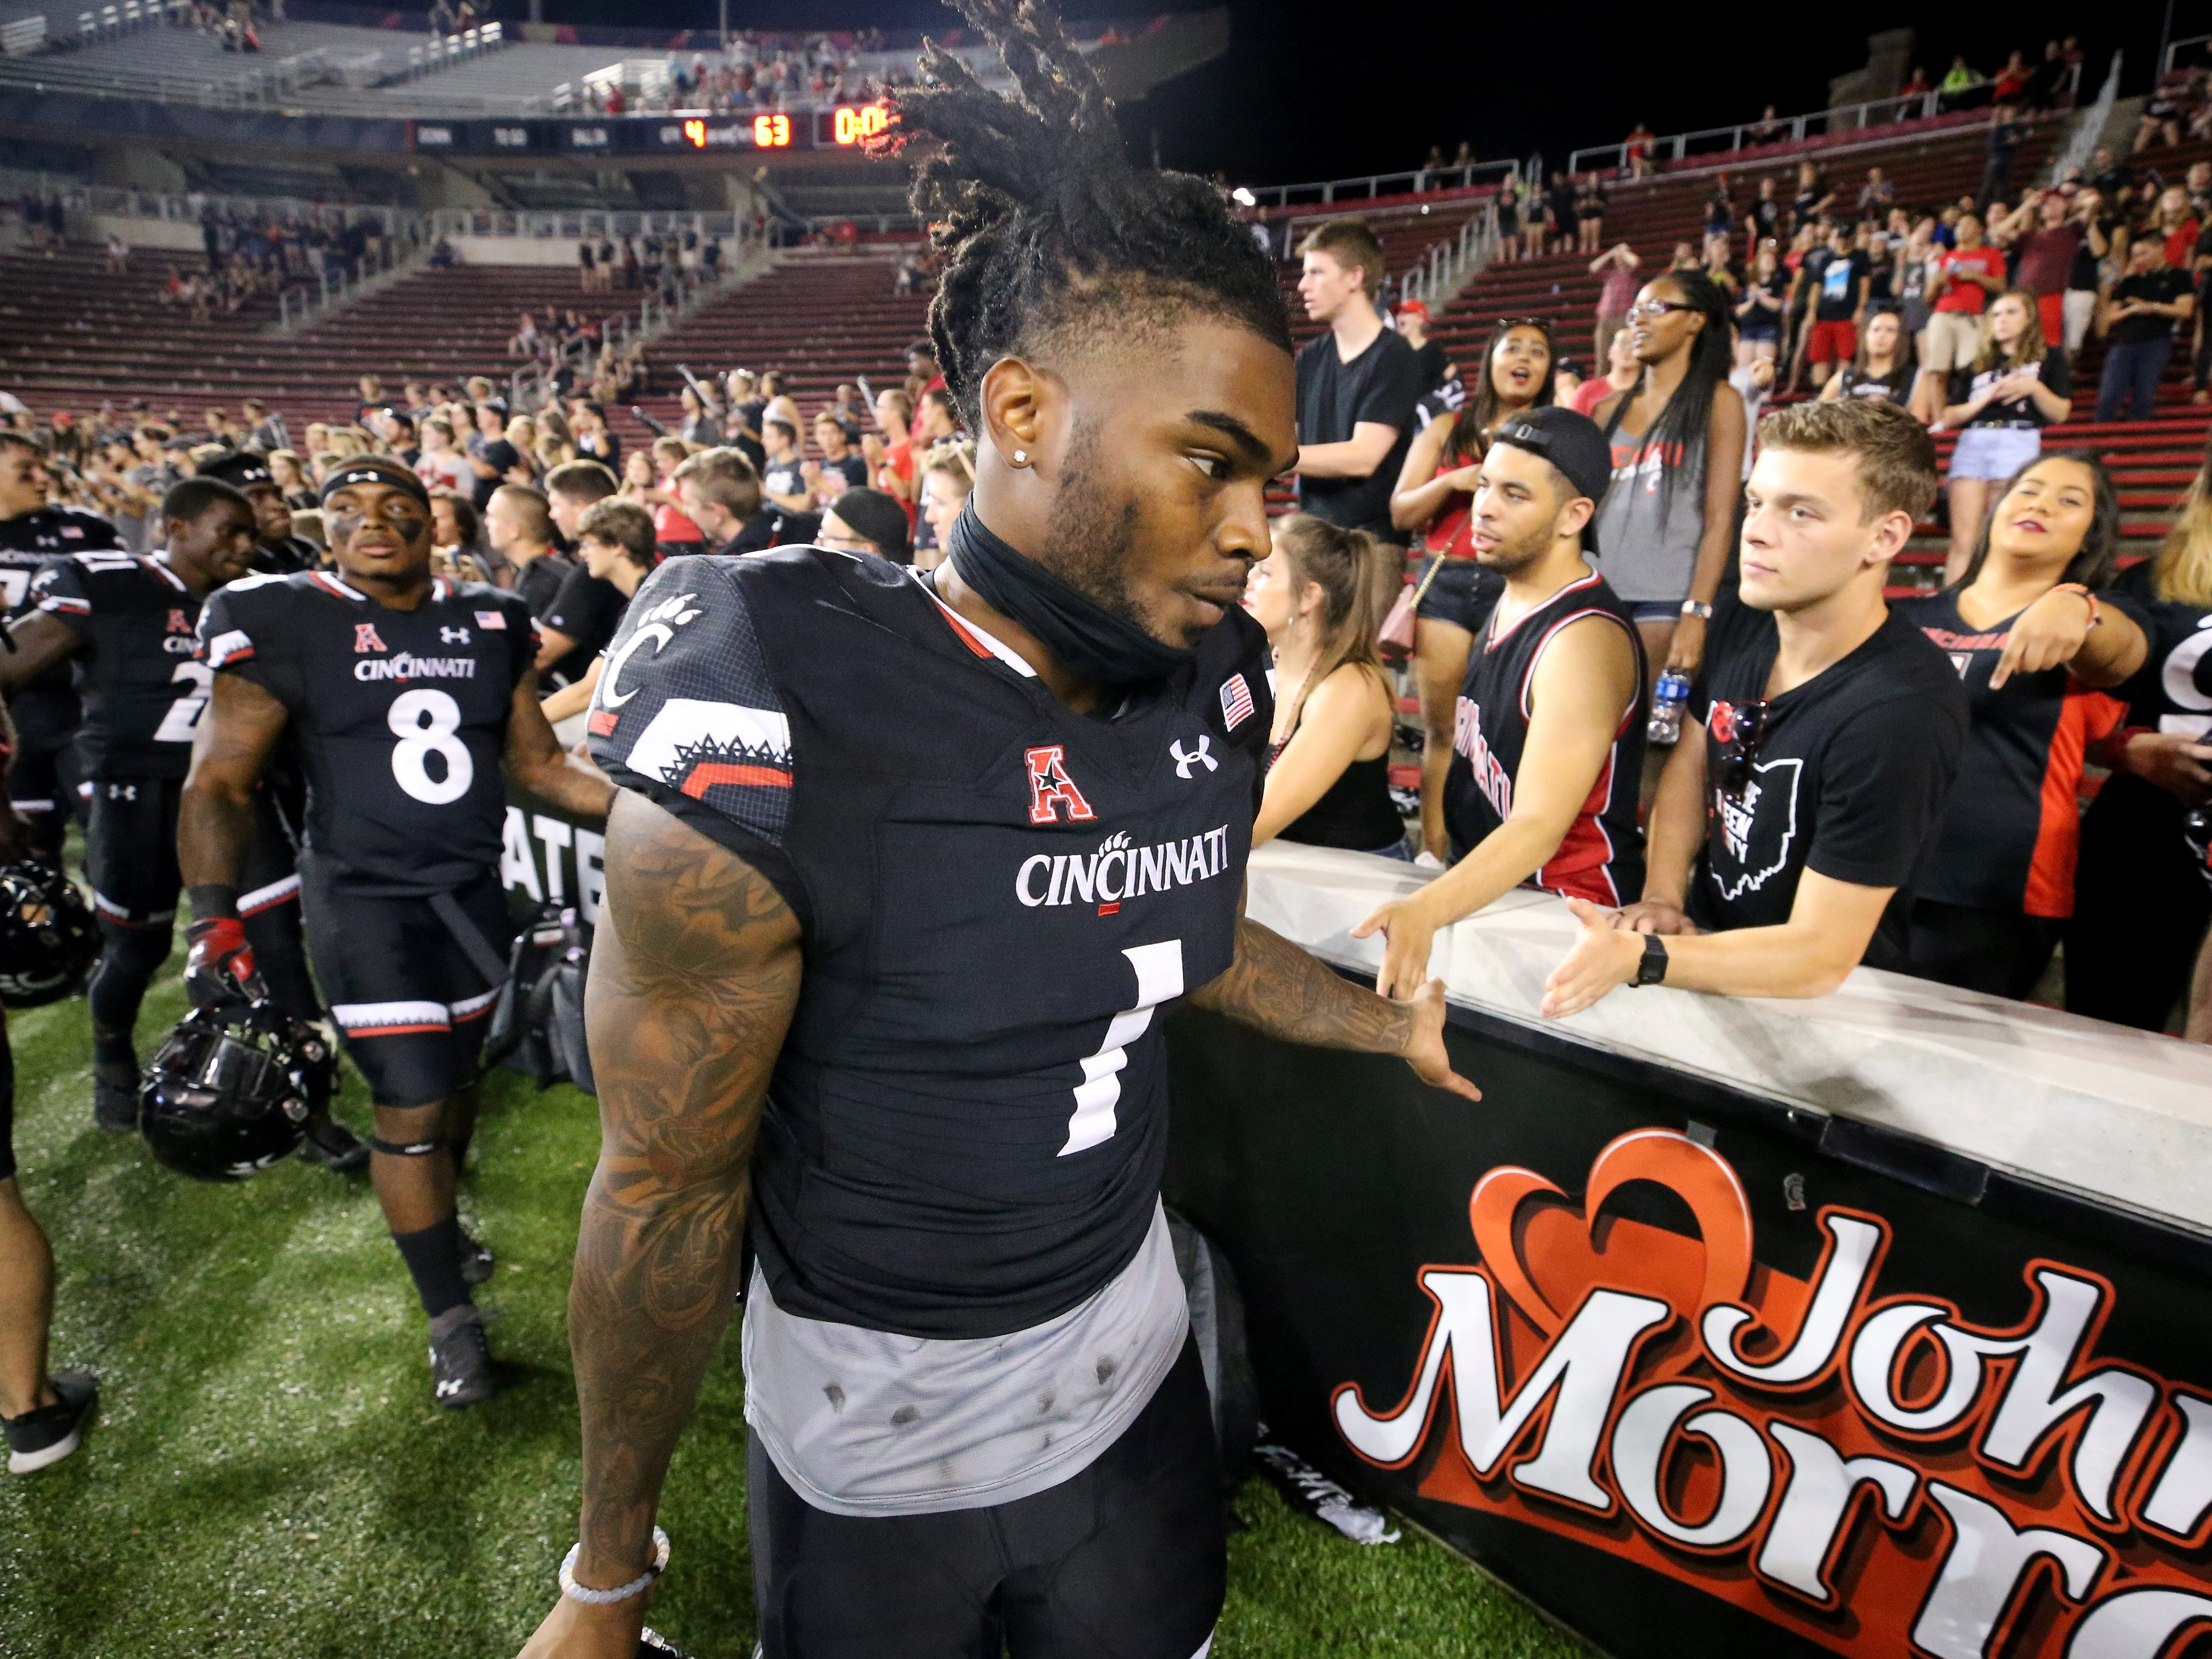 Cincinnati Bearcats wide receiver Kahlil Lewis (1) high fives fans after a college football game between the Cincinnati Bearcats and the Alabama A&M Bulldogs, Saturday, Sept. 15, 2018, at Nippert Stadium in Cincinnati. Cincinnati Bearcats won 63-7.